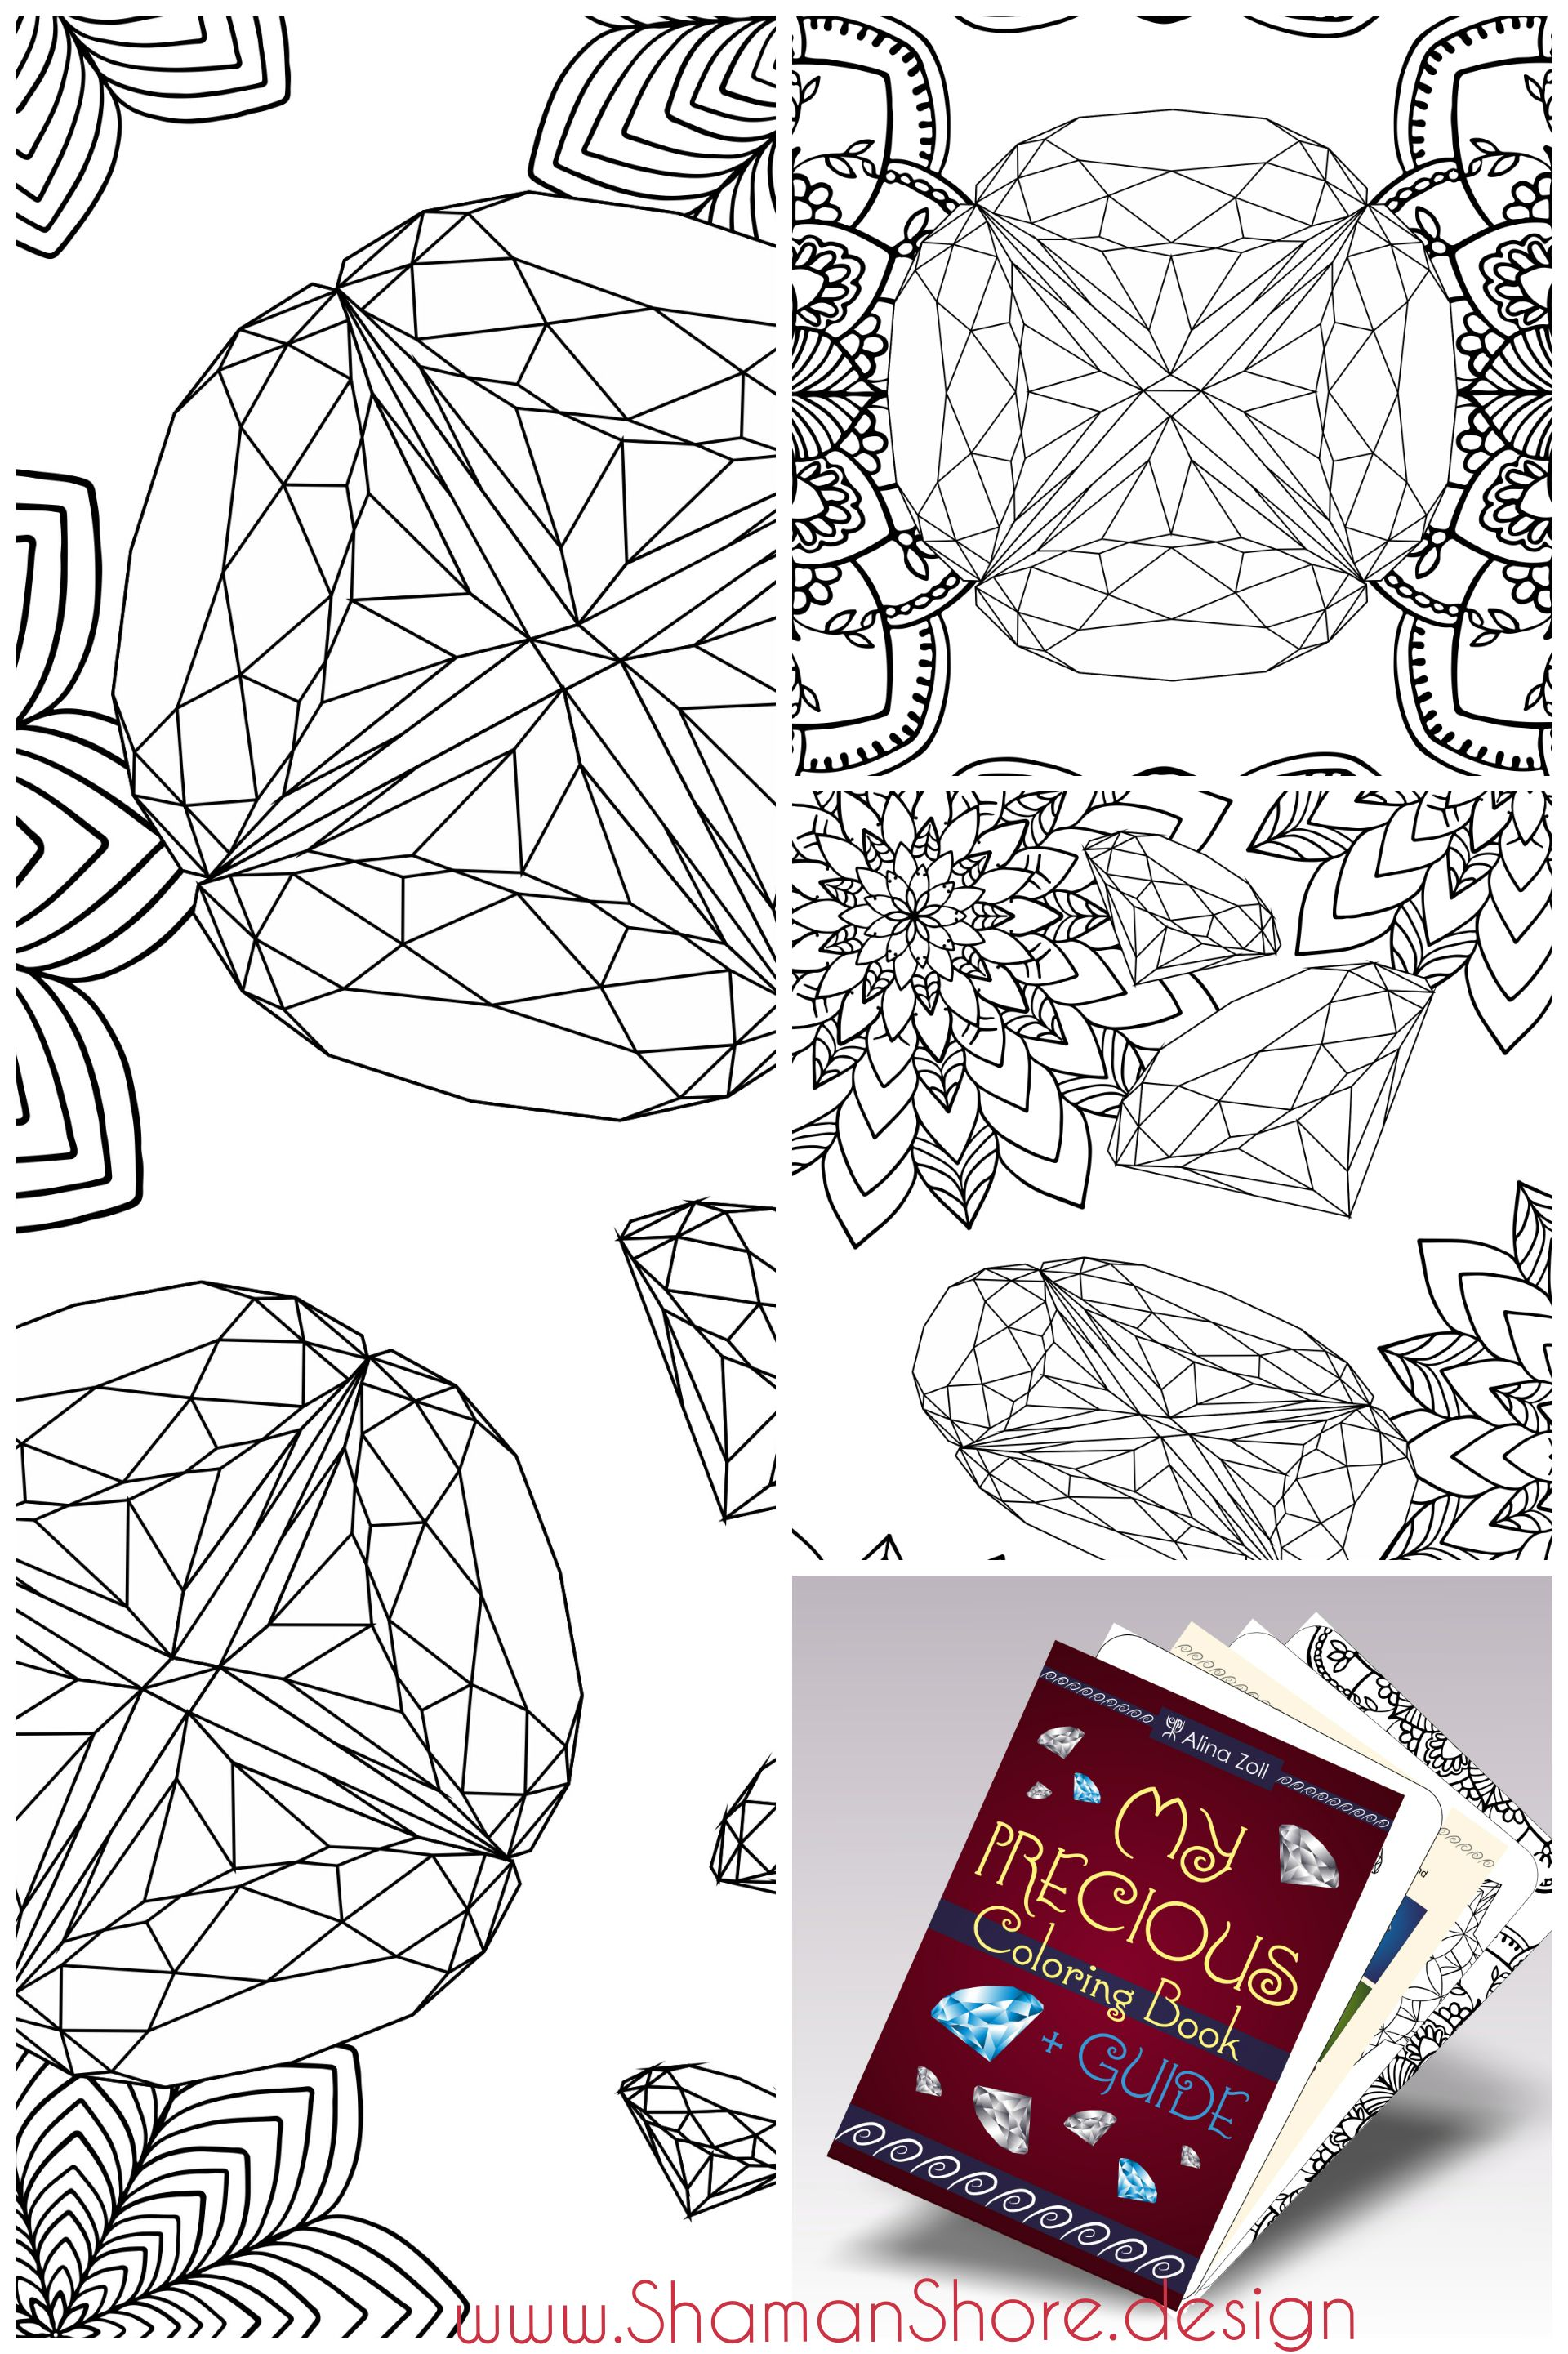 Gemstone Adult Coloring Book Download Pages With Guide And Examples Diamond Drawing Tutorial